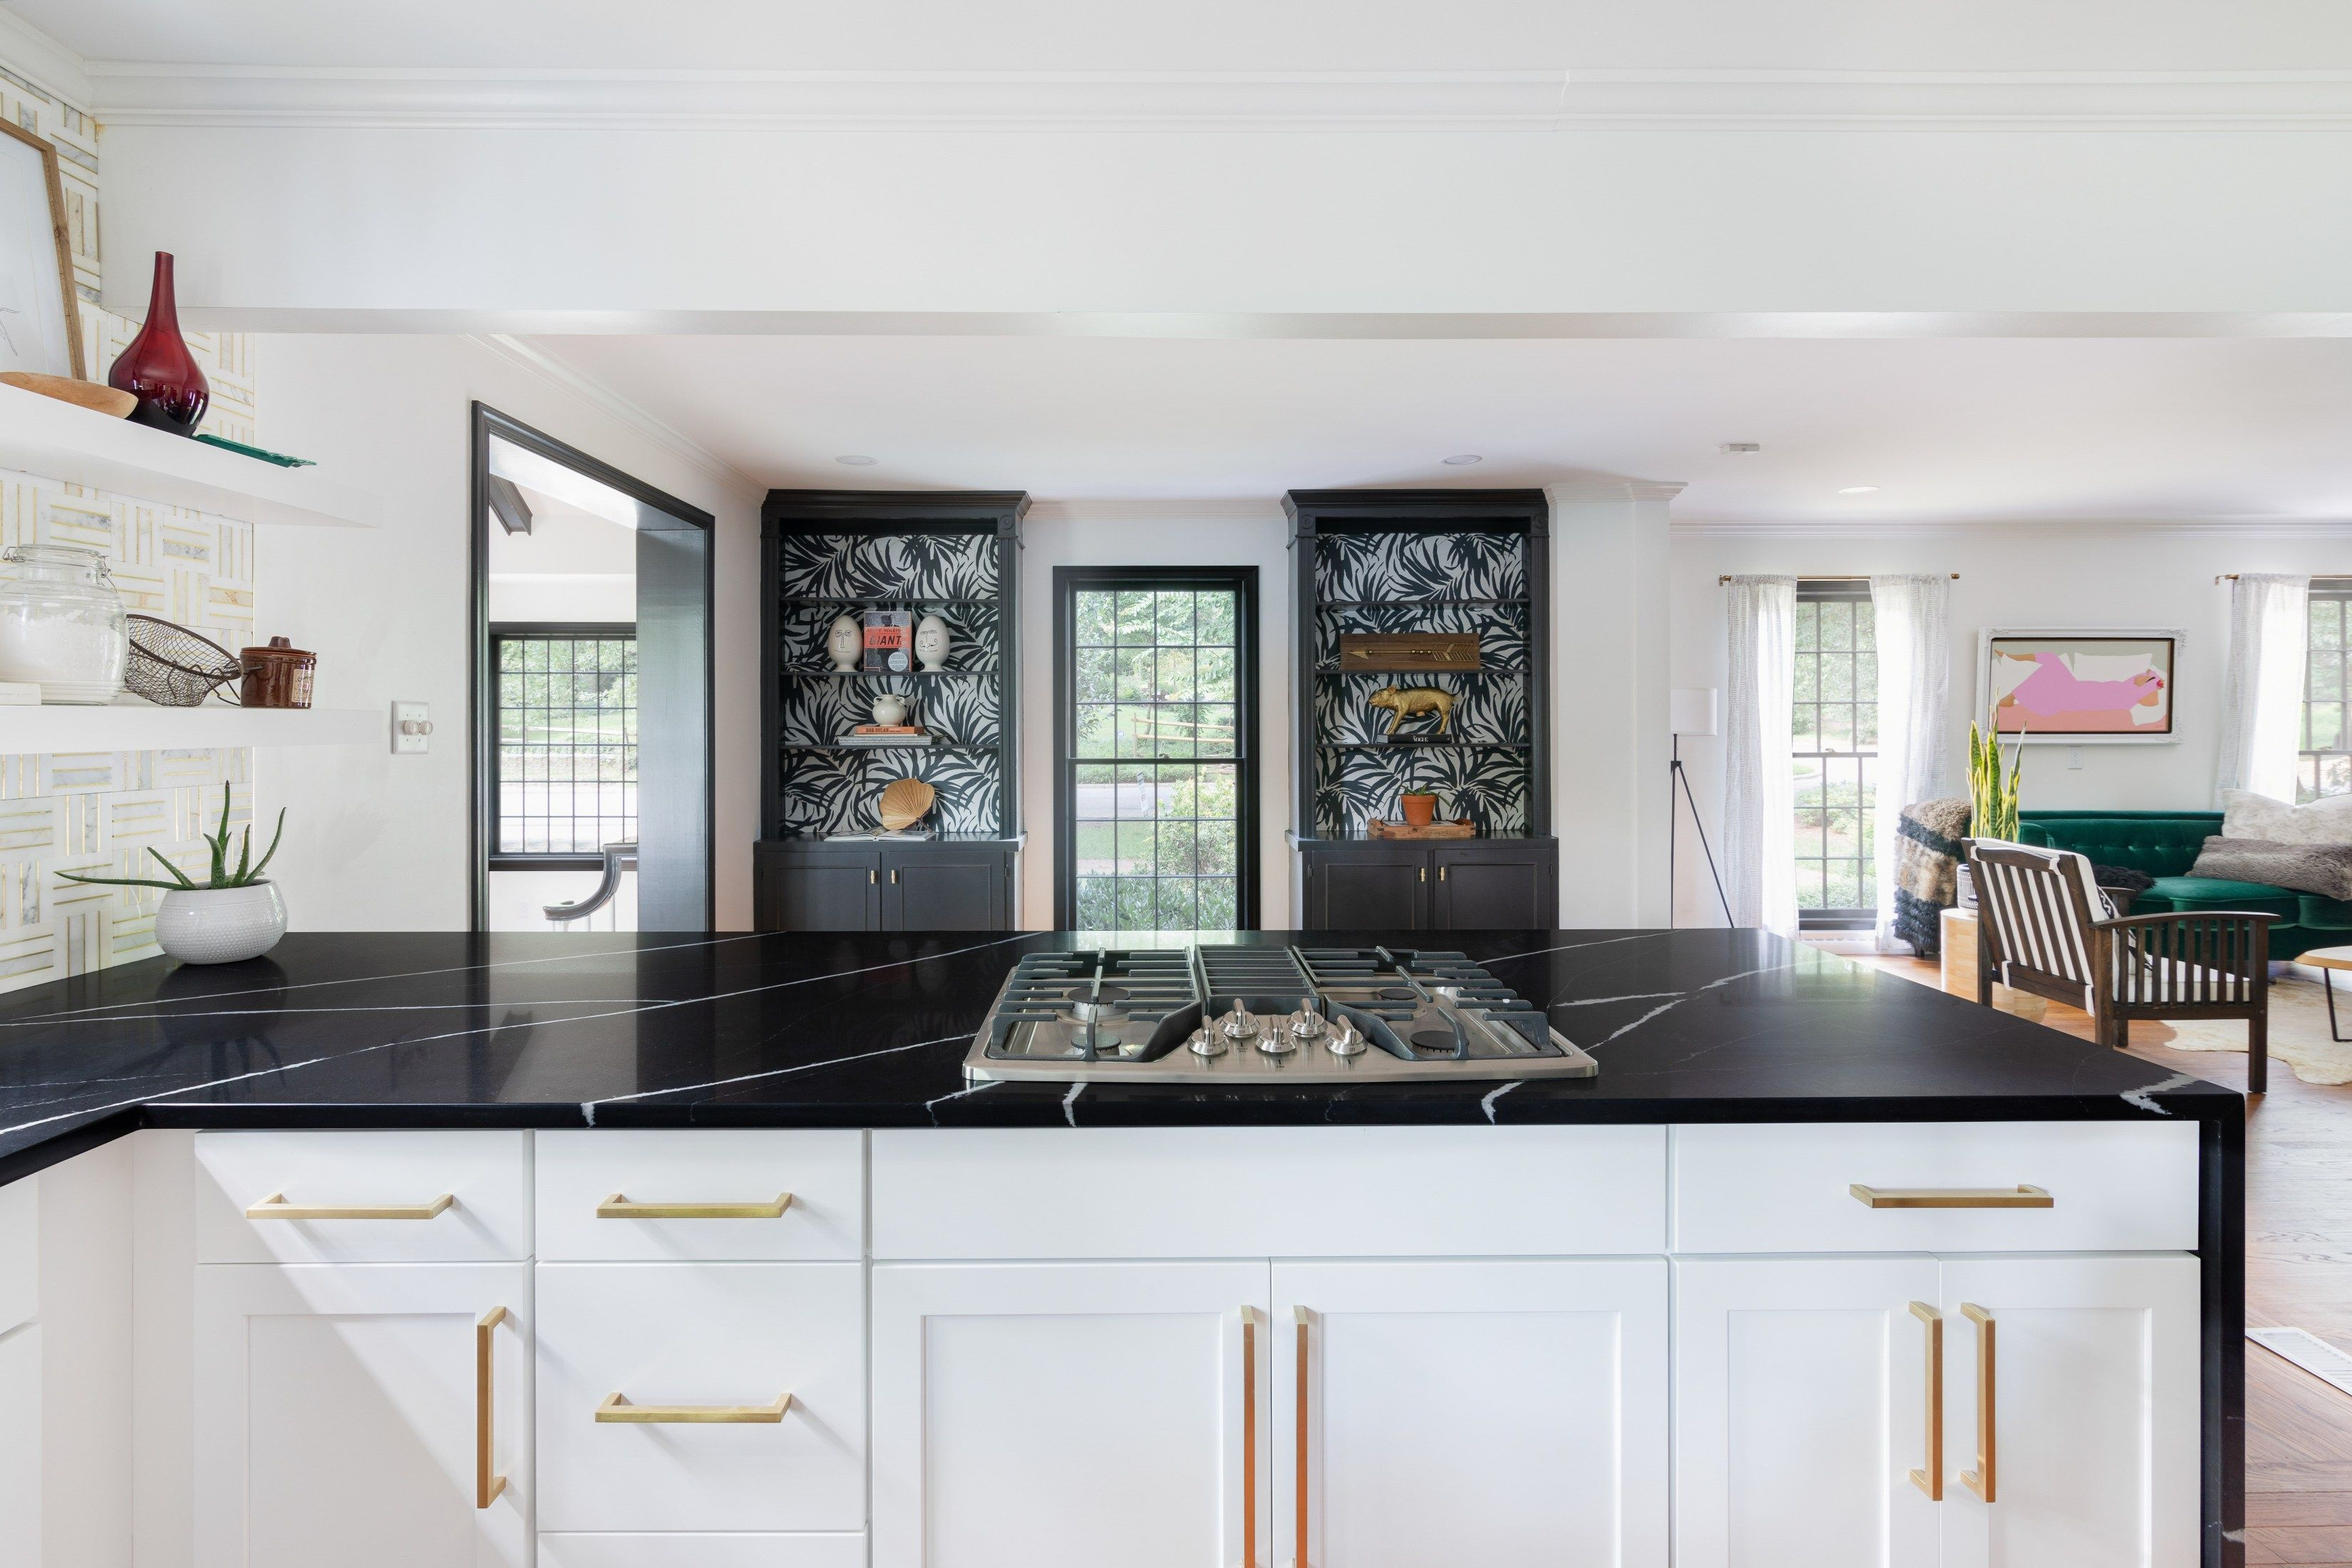 Download Wallpaper Modern White Kitchen Cabinets With Black Countertops